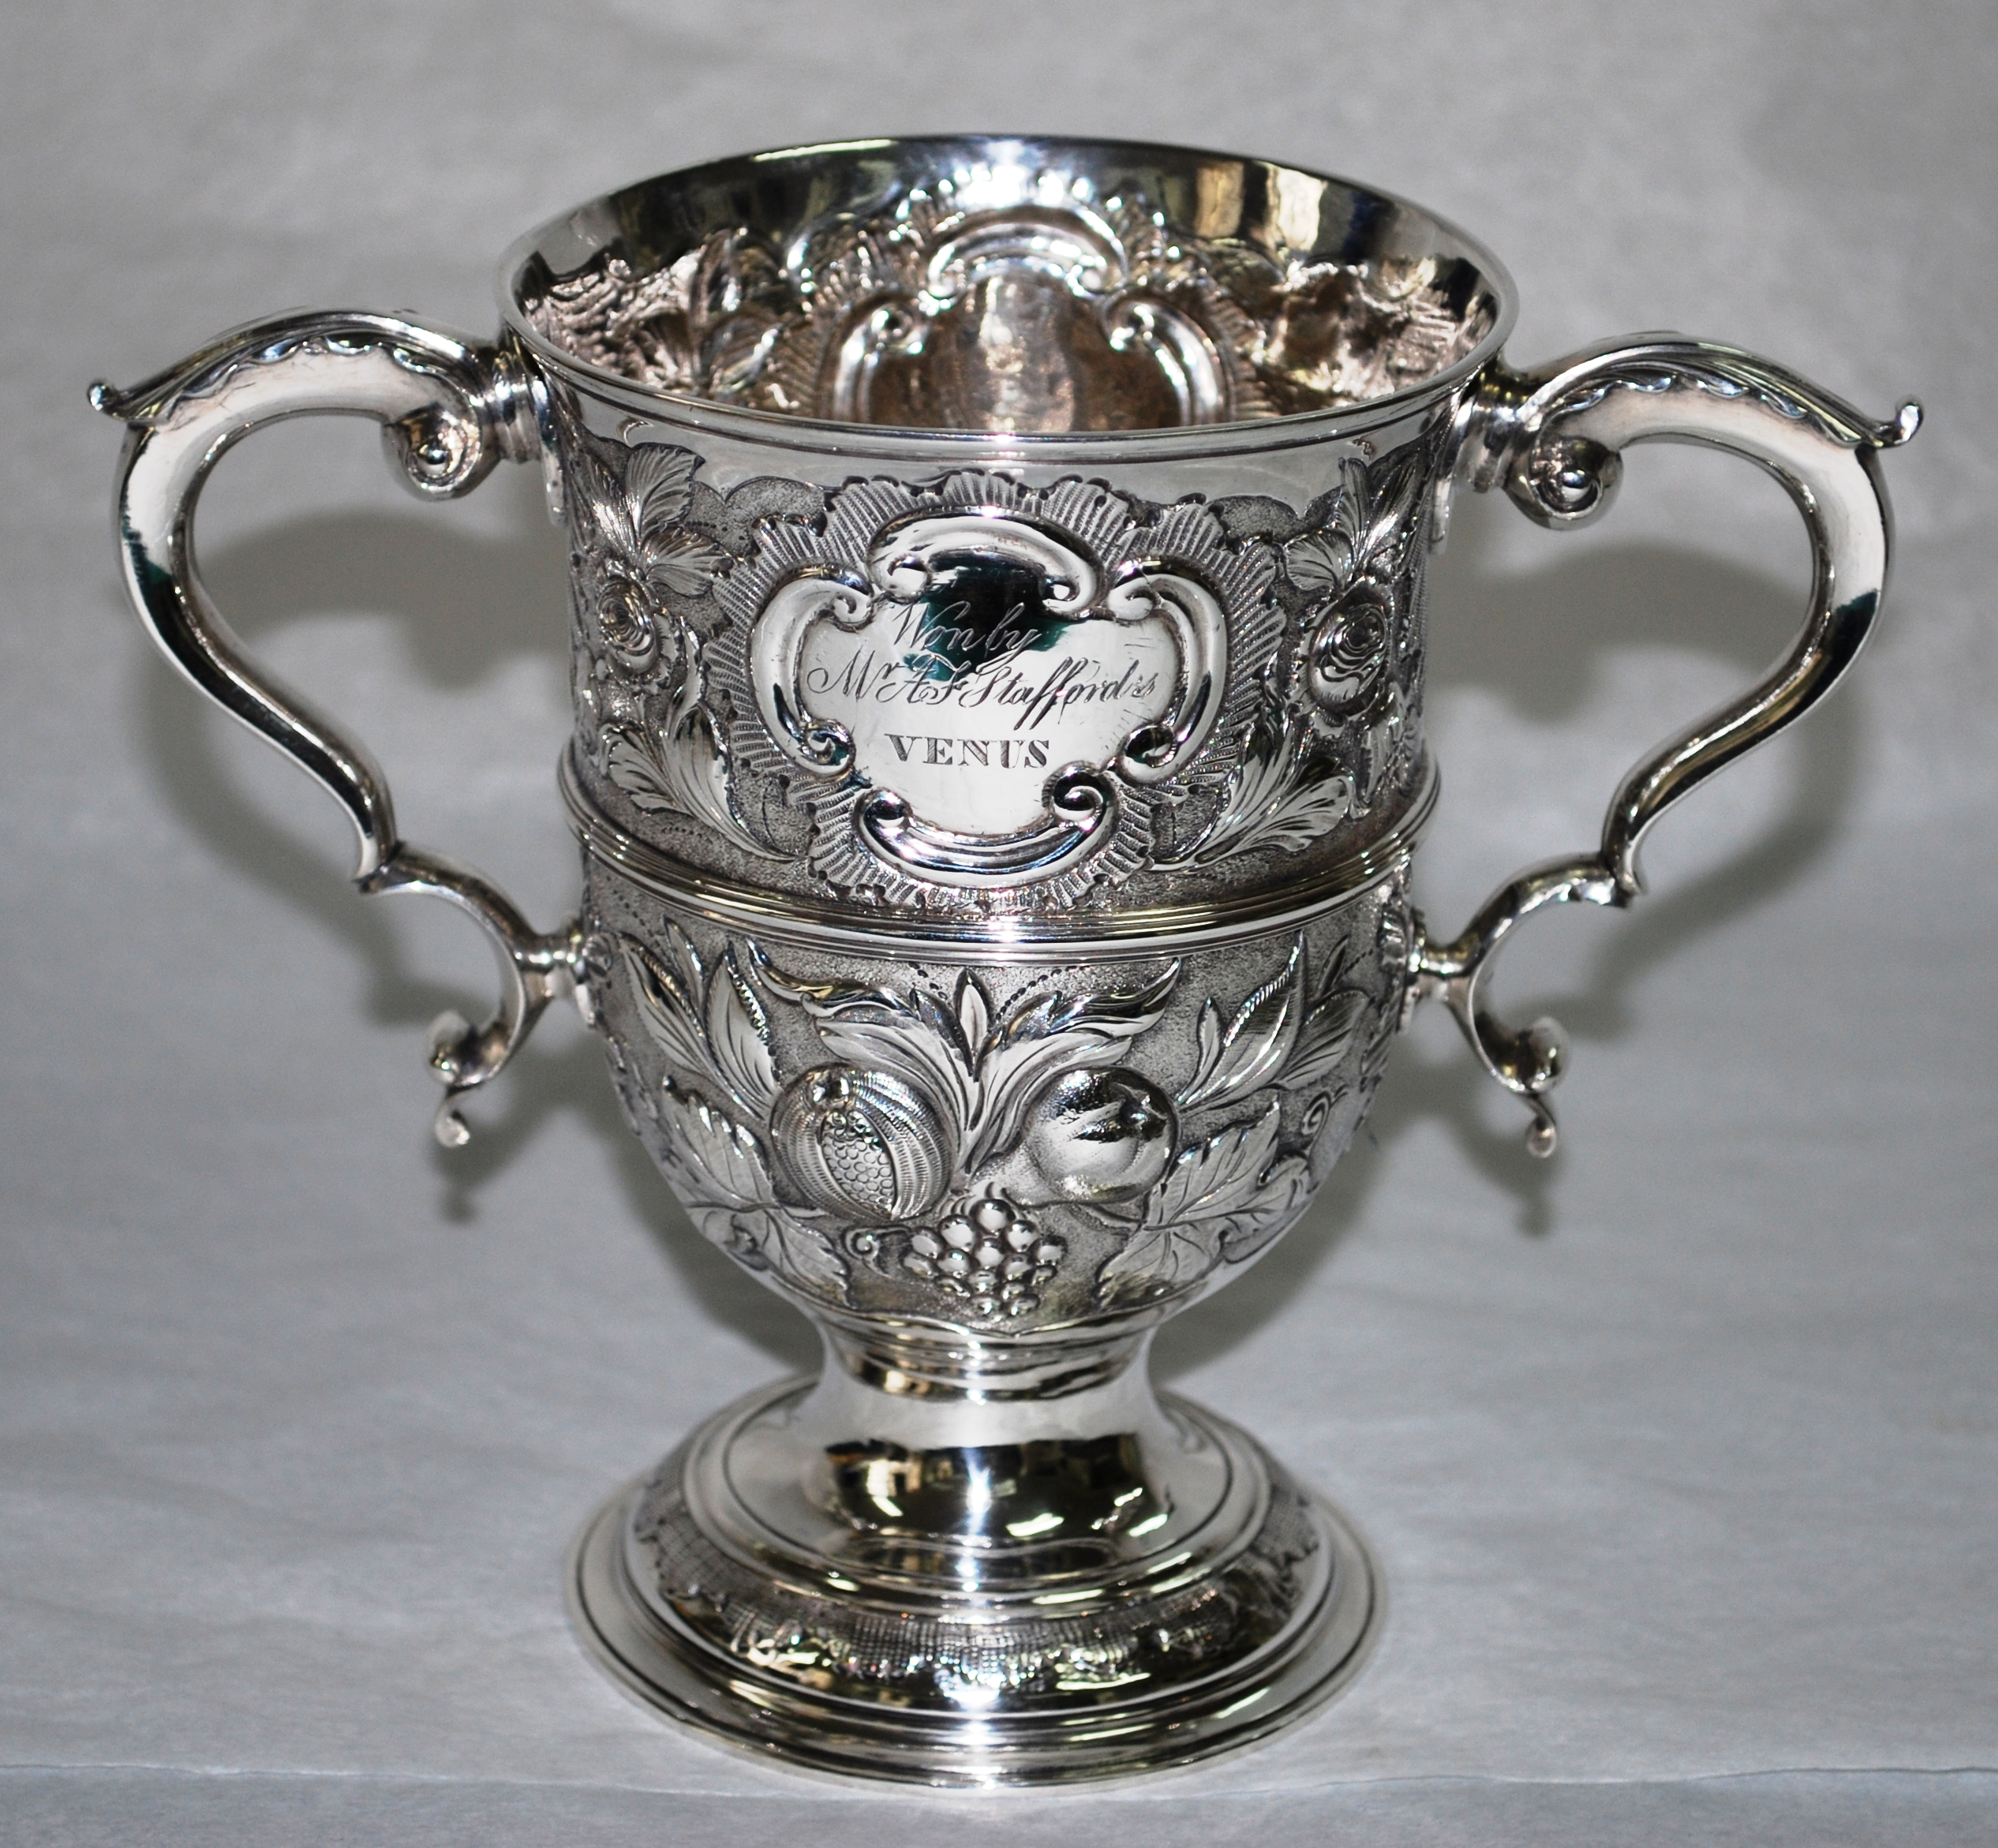 Silver cup engraved with the names of the winning boat, VENUS, and her owner, A F Stafford